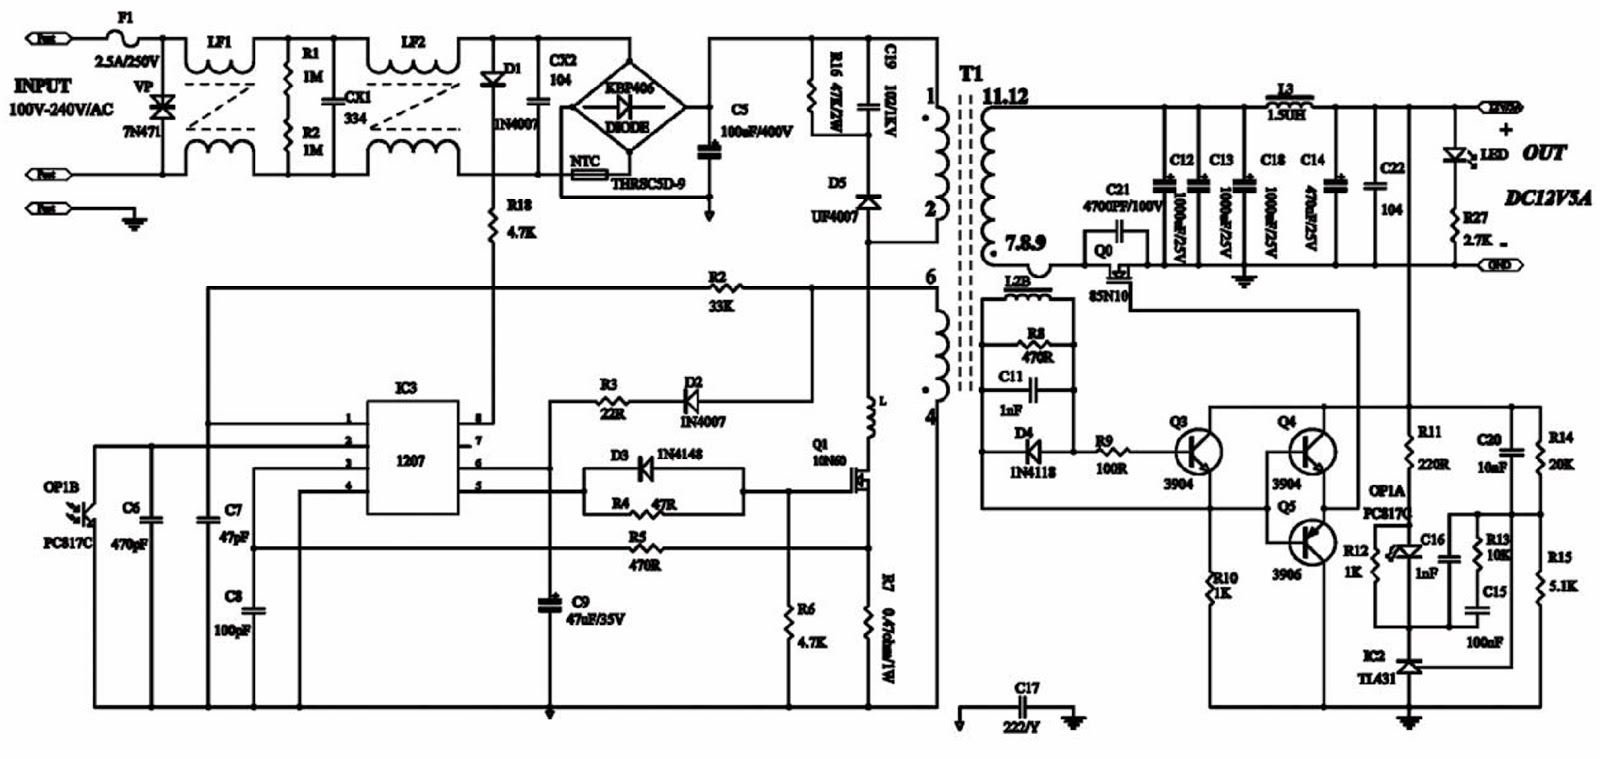 hight resolution of tv schematic circuit diagram wiring diagram load samsung lcd tv schematic diagram